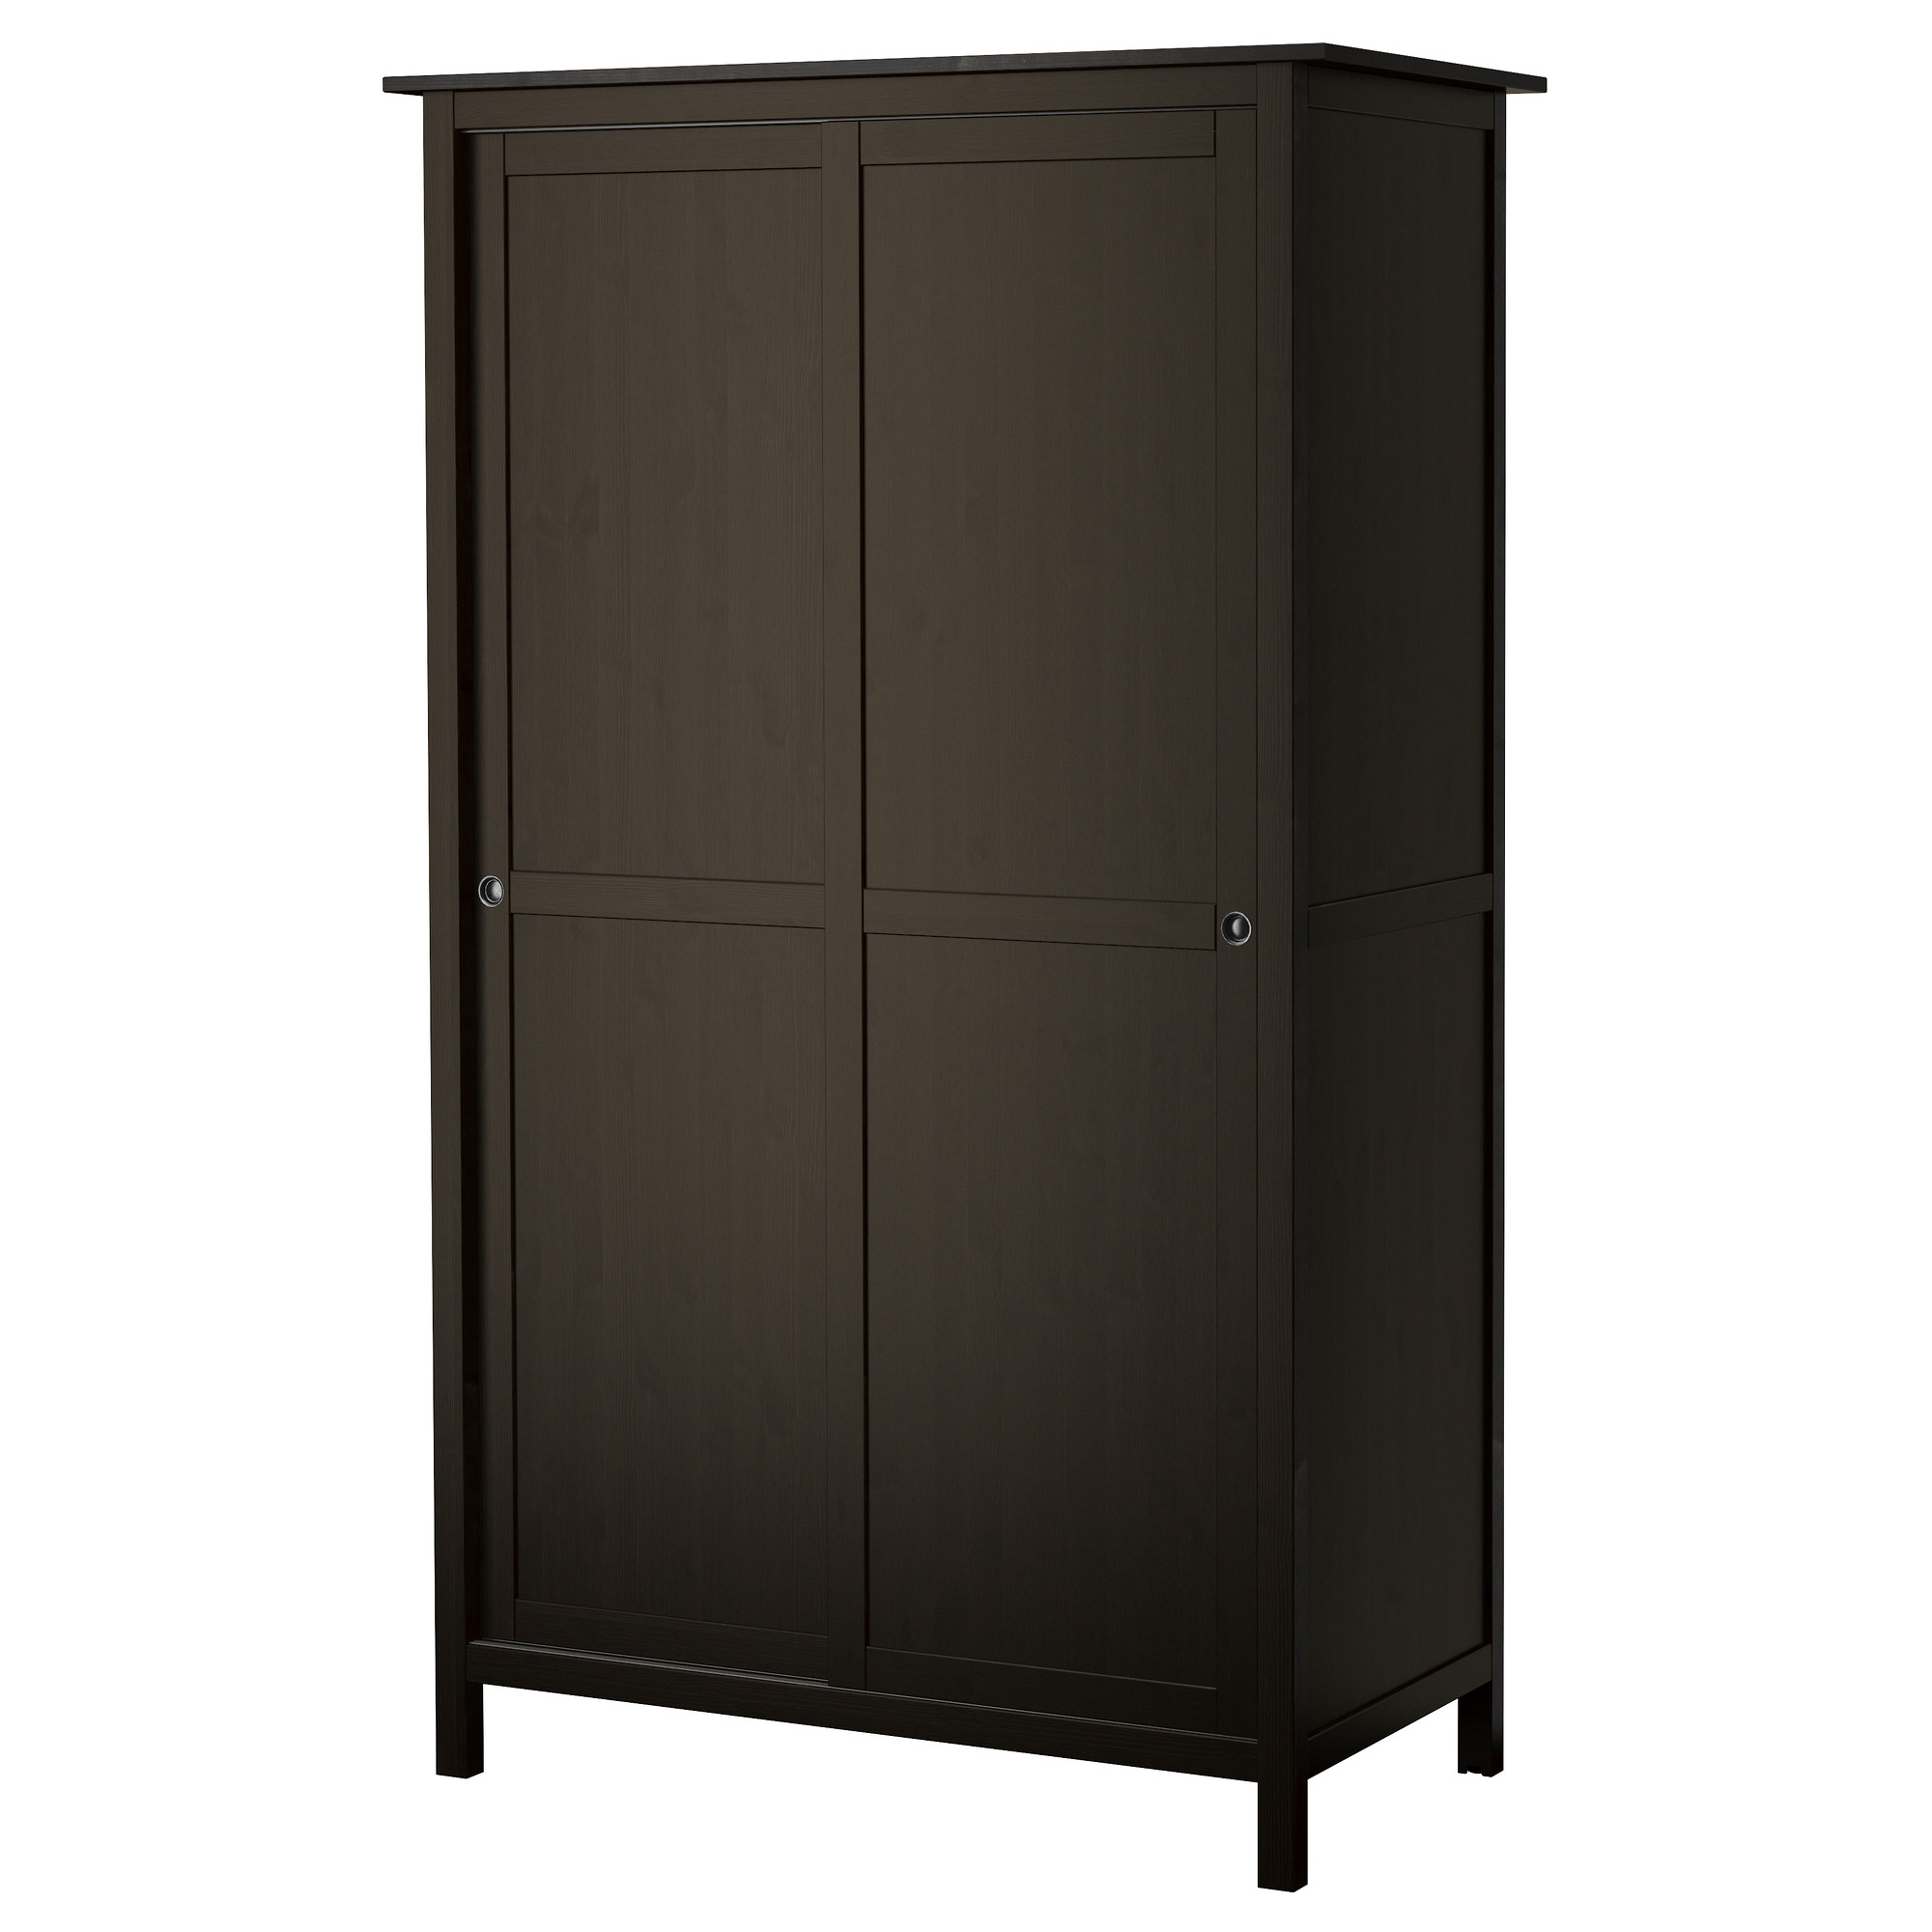 HEMNES Wardrobe With 2 Sliding Doors, Black Brown Width: 47 1/4